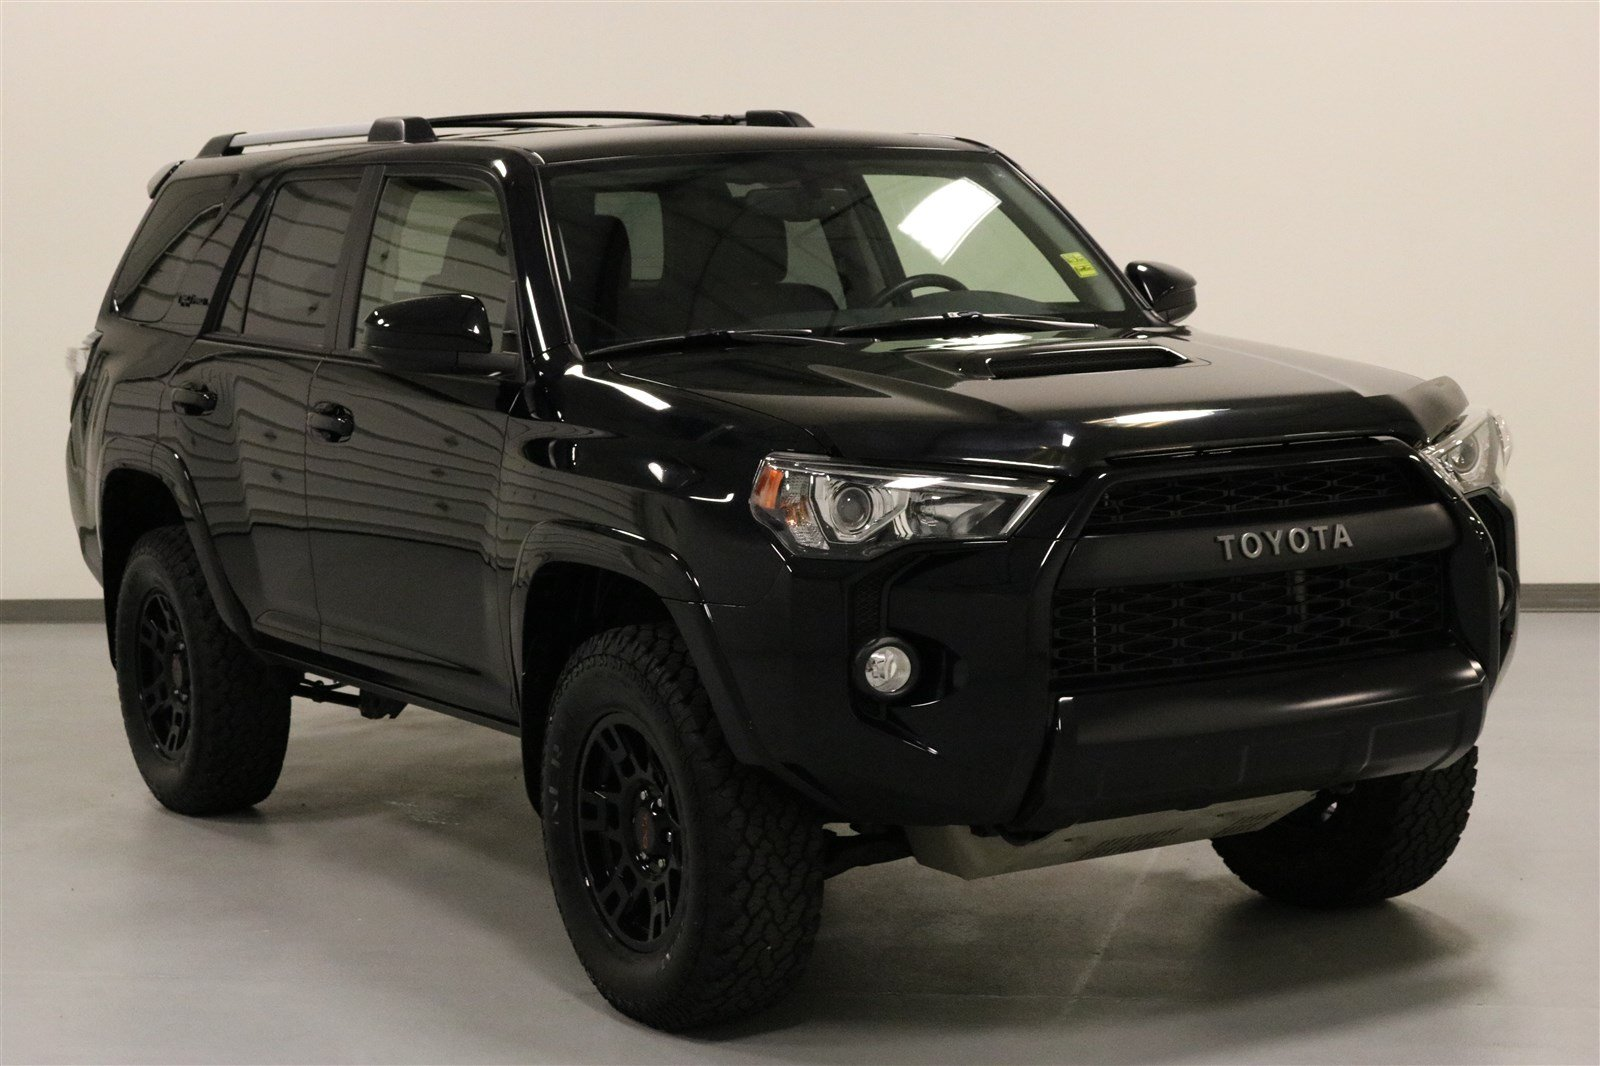 2015 toyota 4runner limited black images galleries with a bite. Black Bedroom Furniture Sets. Home Design Ideas